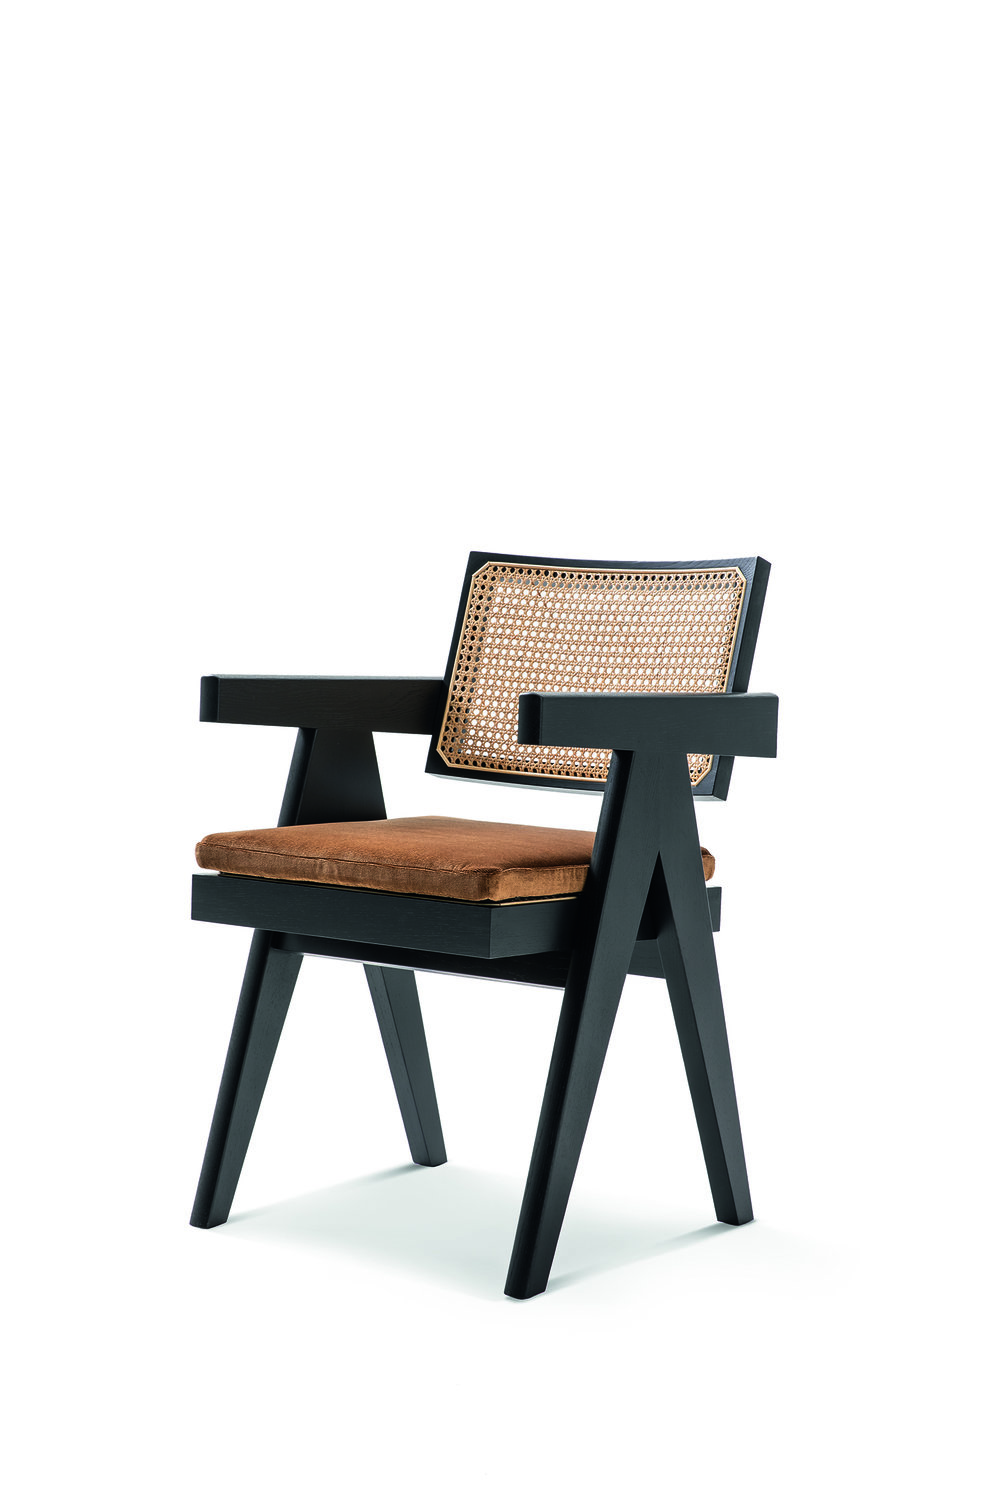 The  Capitol Office Chair  designed by Pierre Jeanneret for the Chandigarh Project. Photo © Cassina.